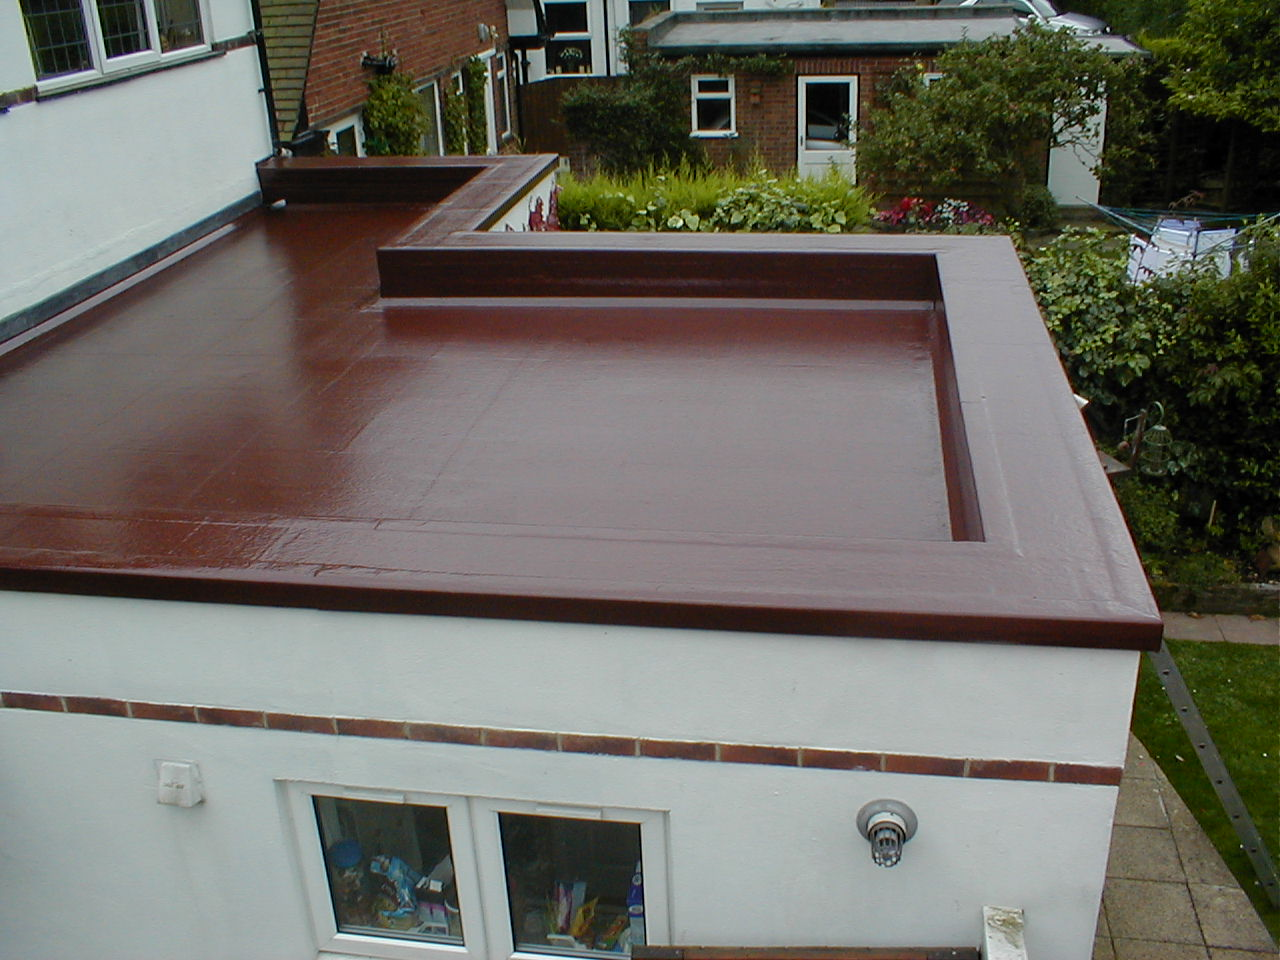 Problems you can face with flat roof my decorative for Concrete flat roof house plans